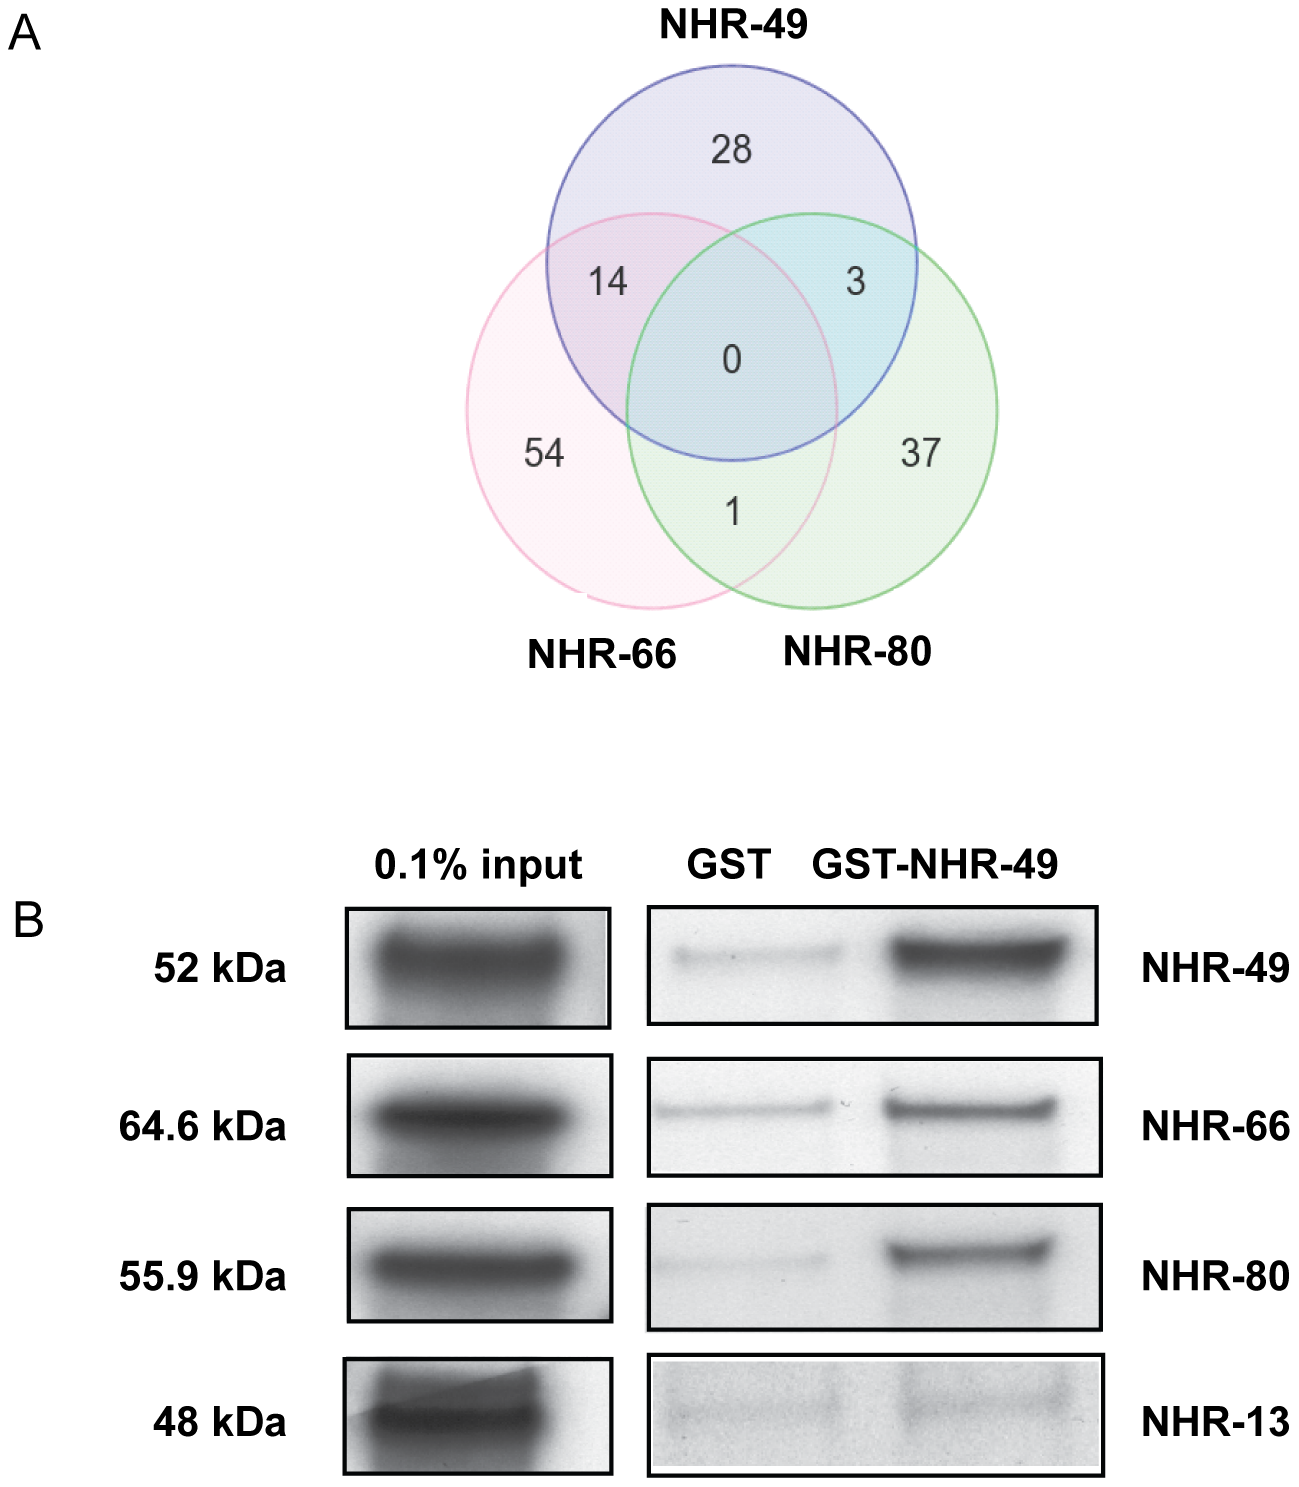 NHR-49 shares target genes and physically interacts with NHR-66 and NHR-80.